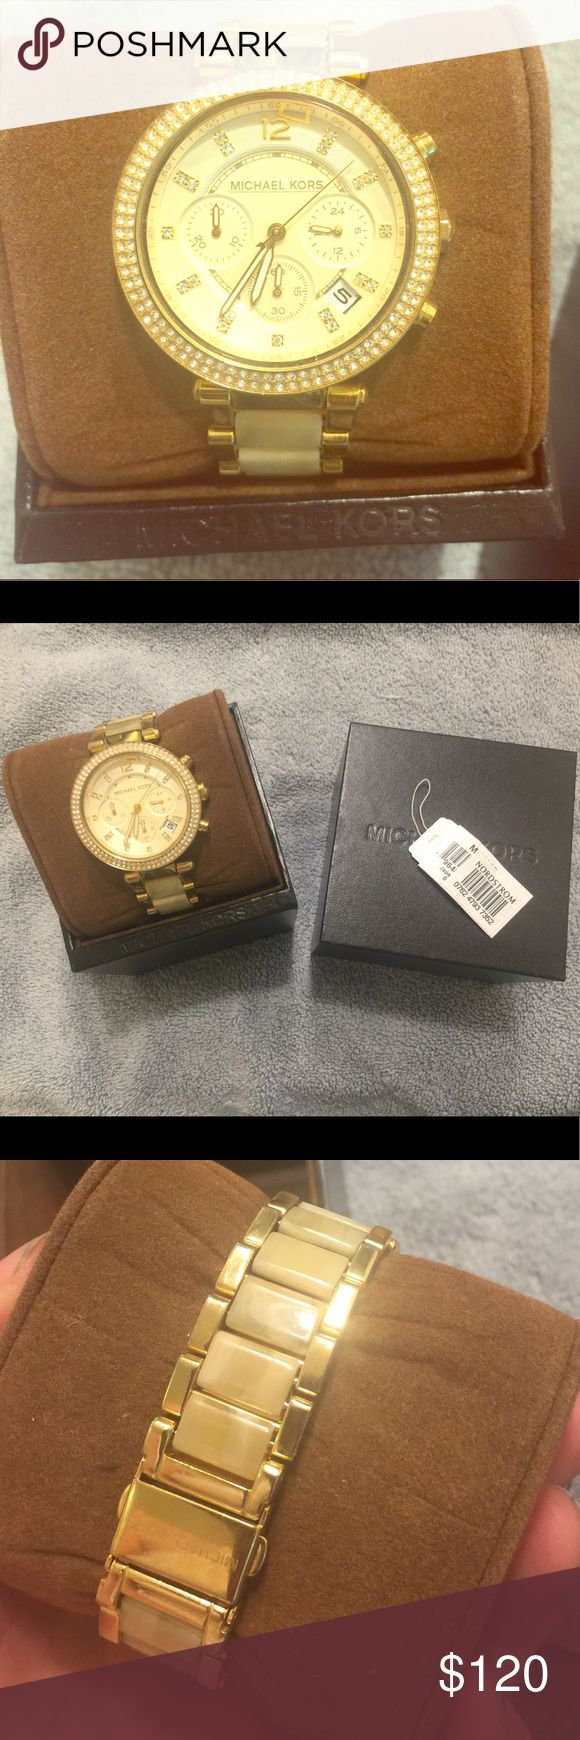 Michael Kors women's gold & diamond watch Michael Kors women's gold and diamond watch.  With box. In perfect condition, barely worn. Michael Kors Accessories Watches